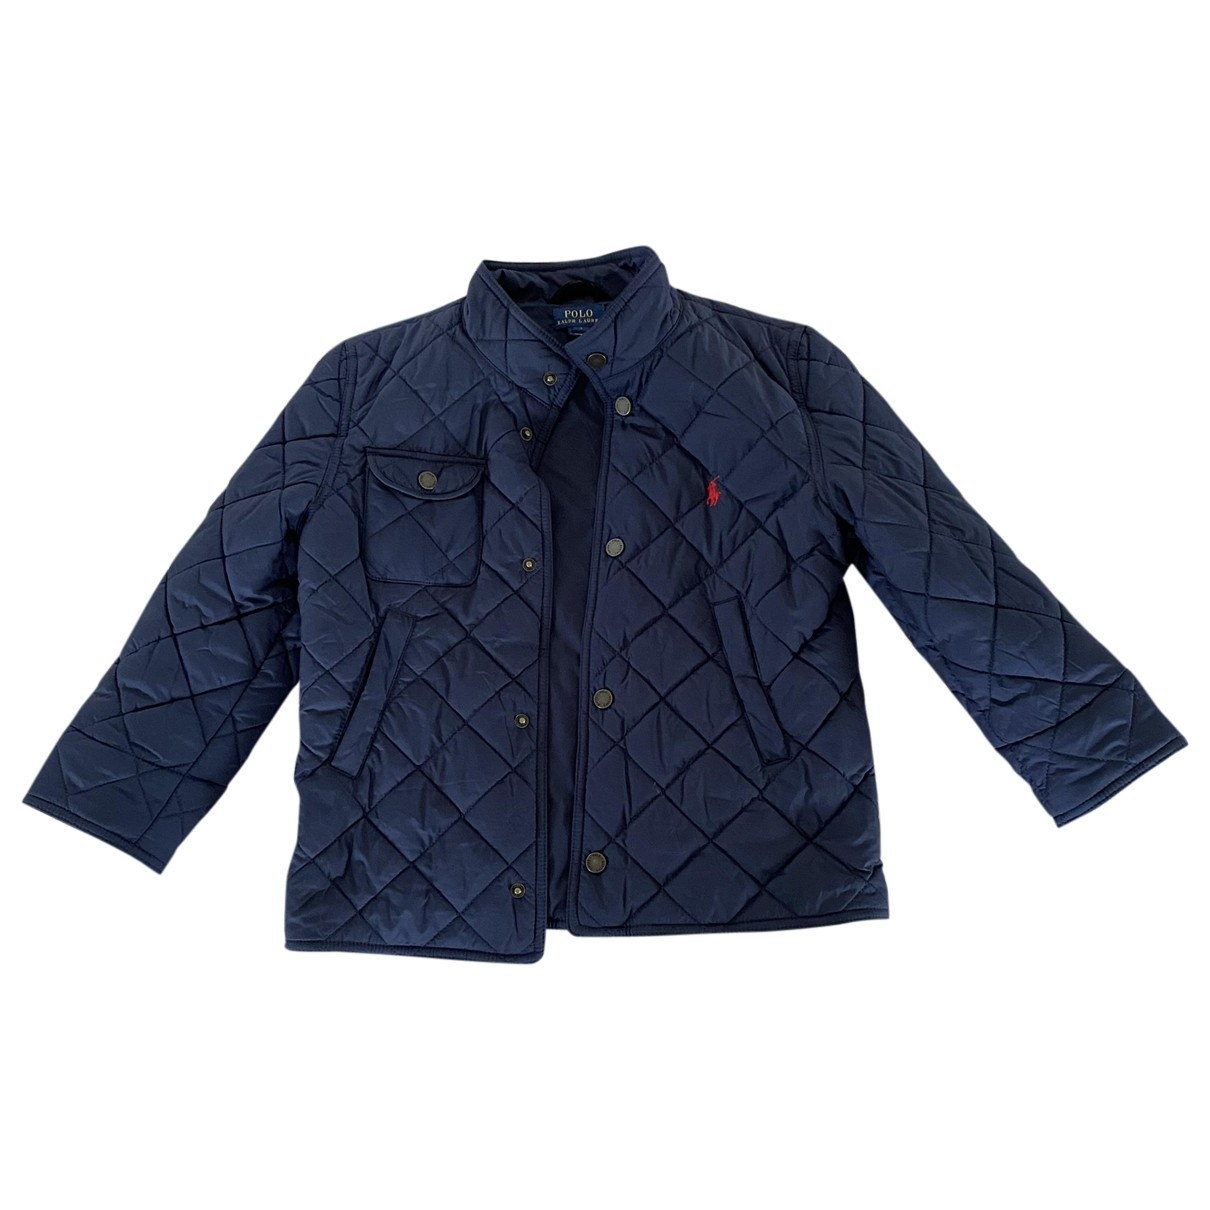 Polo Ralph Lauren \N Navy jacket & coat for Kids 8 years - until 50 inches UK